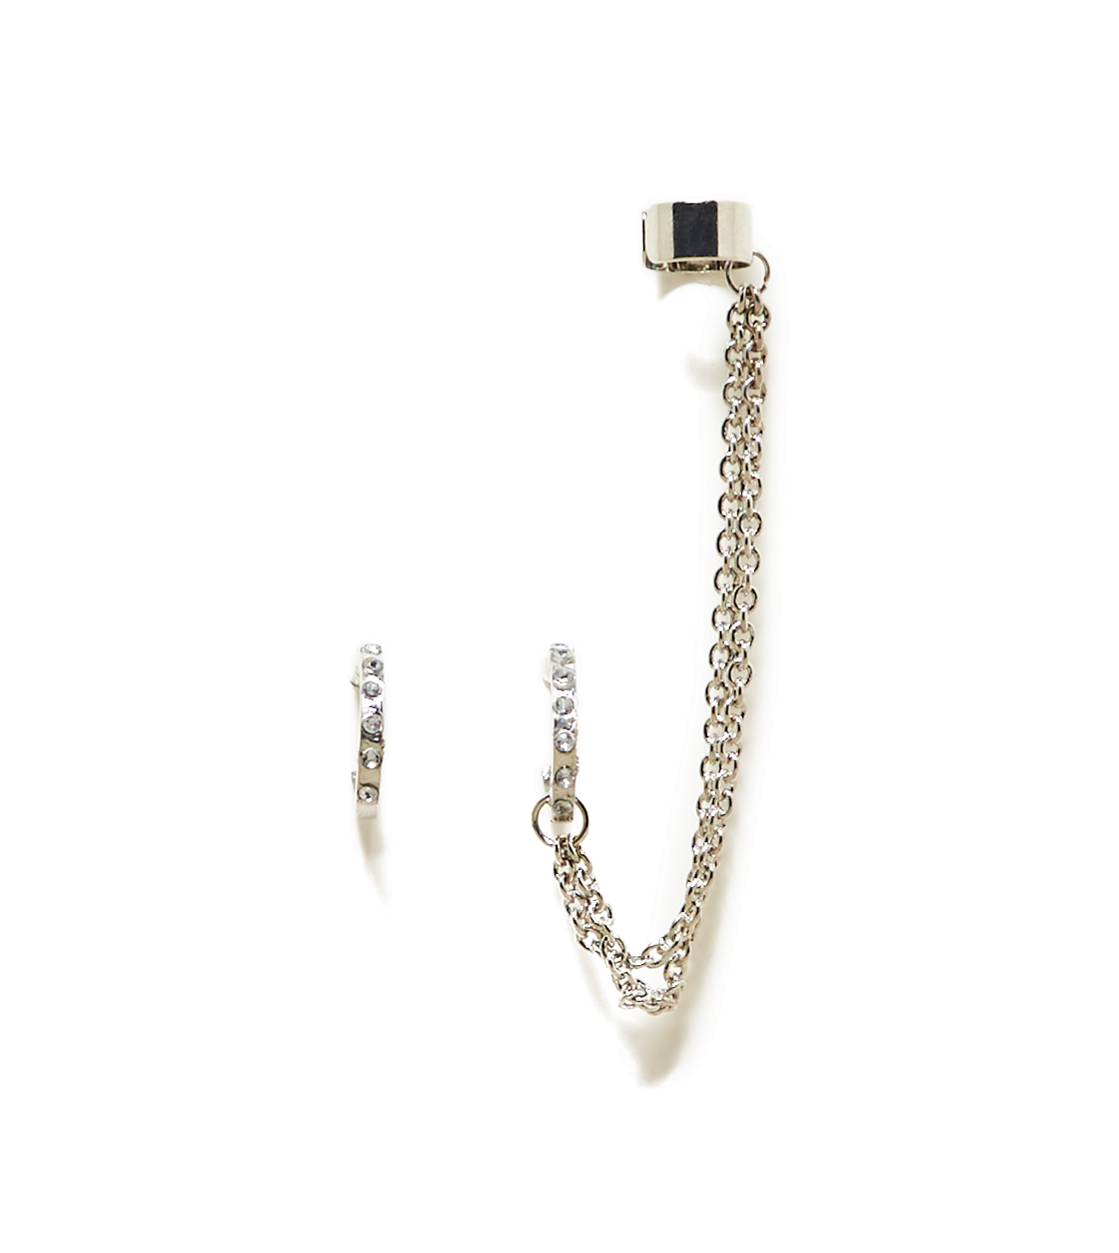 Silver AEO Chain Link Ear Cuffs